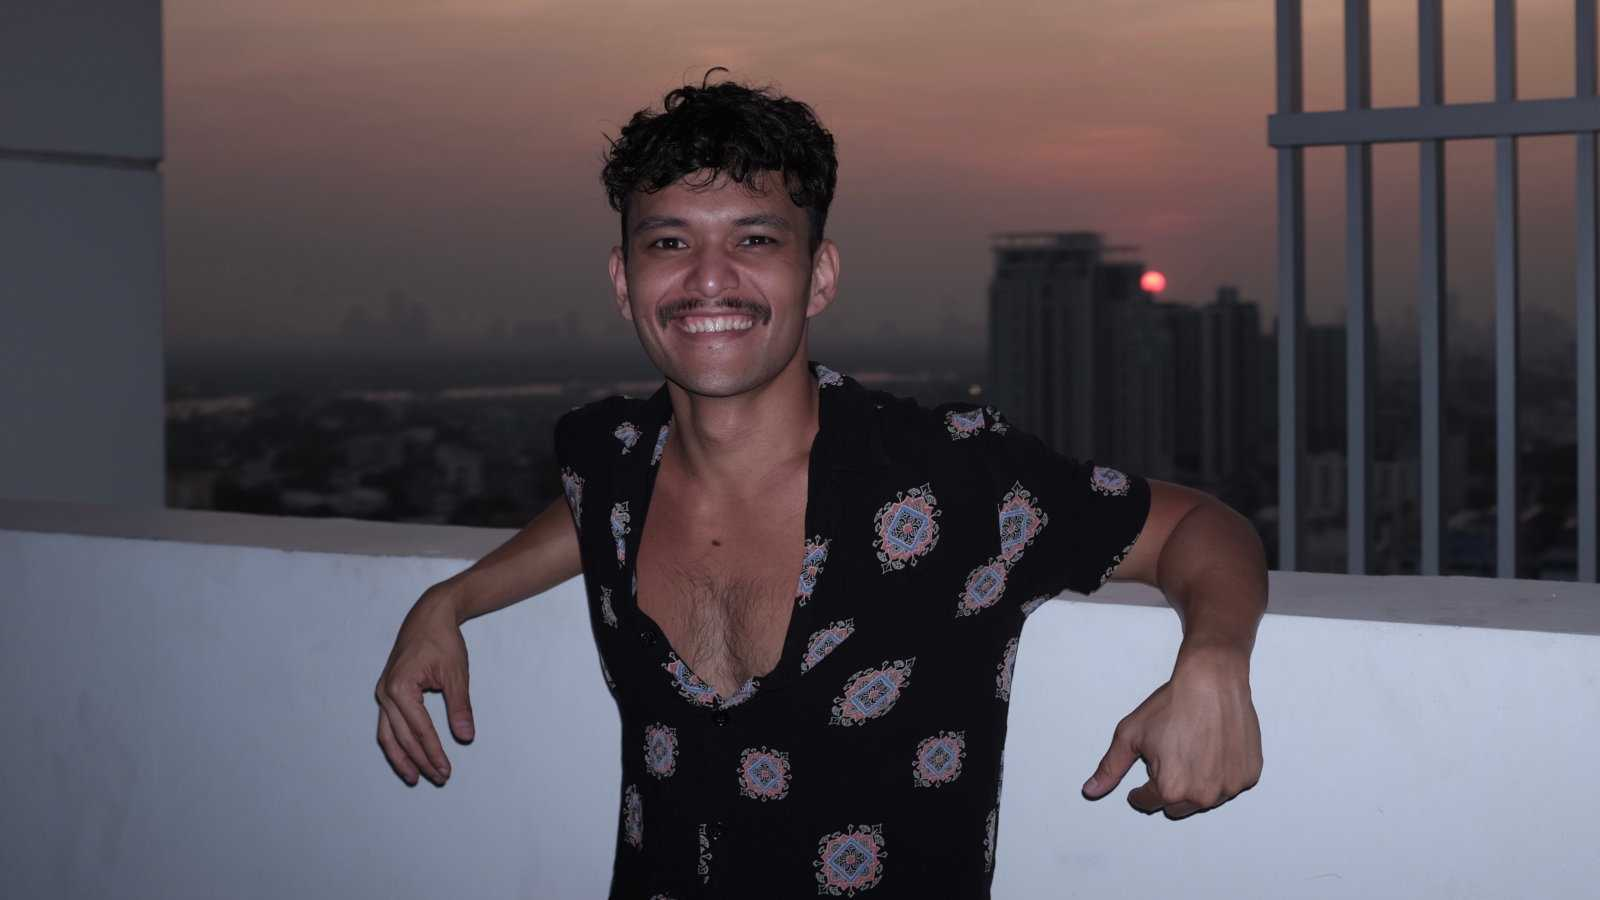 Read our interview with Saroj from Bangkok to find out what it's like to grow up gay in Thailand